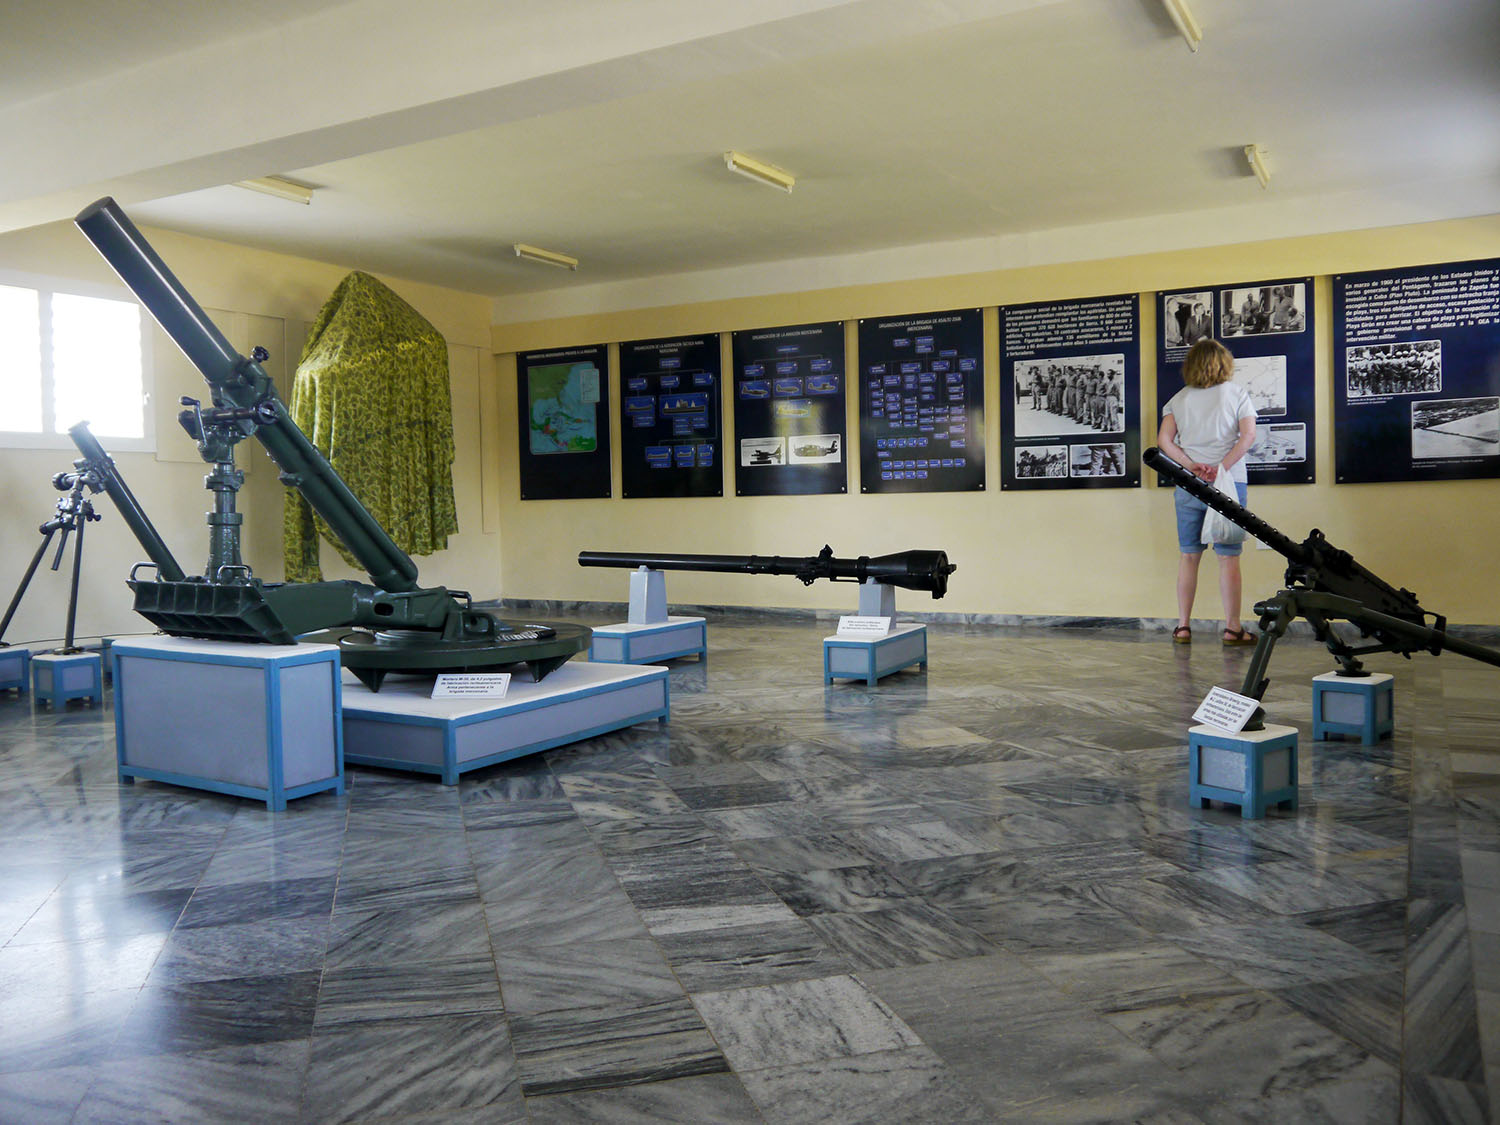 A display room in the museum.